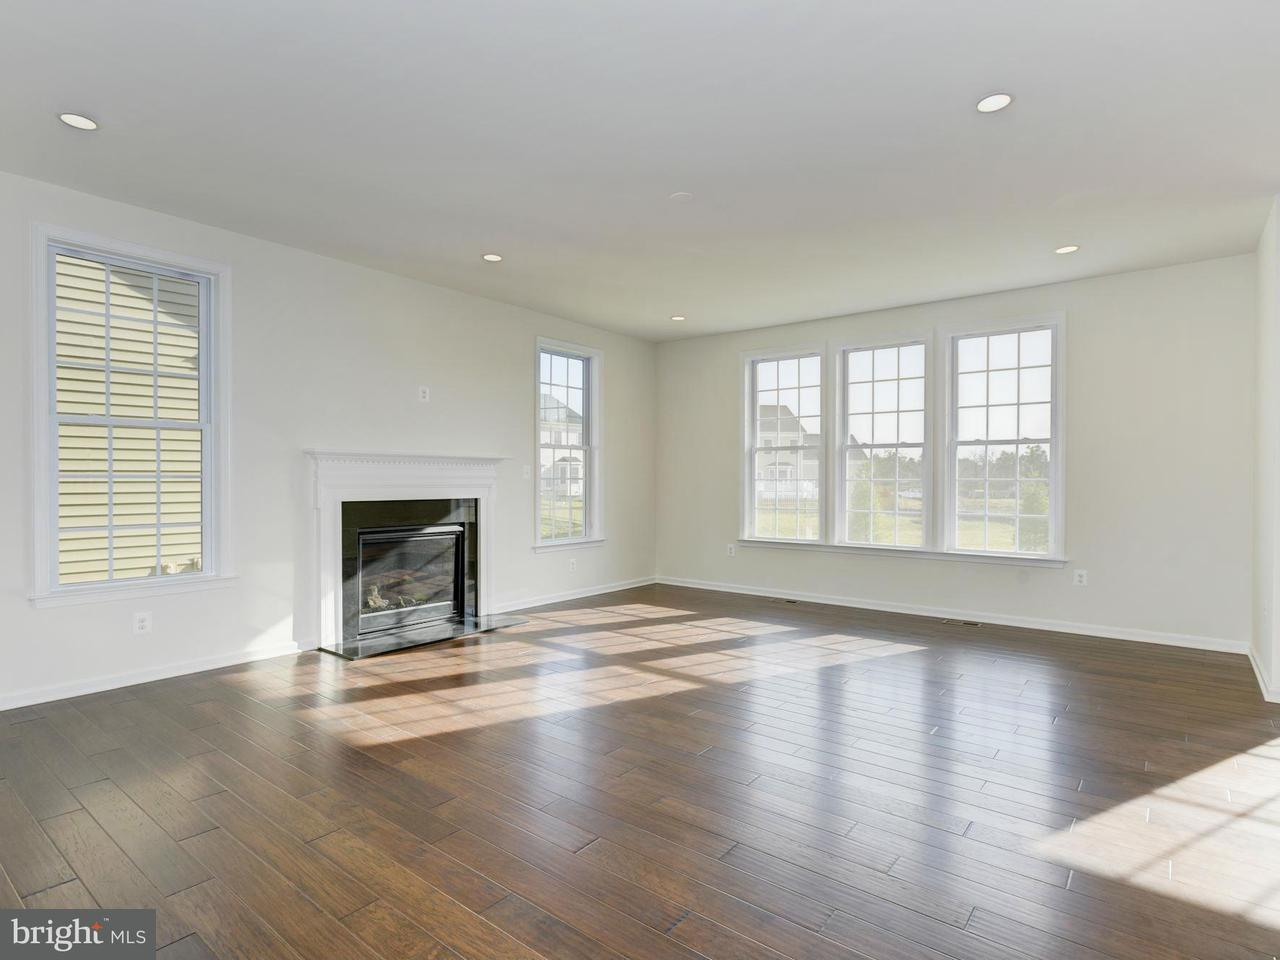 Additional photo for property listing at 24263 Crabtree Ct  Aldie, Virginia 20105 United States